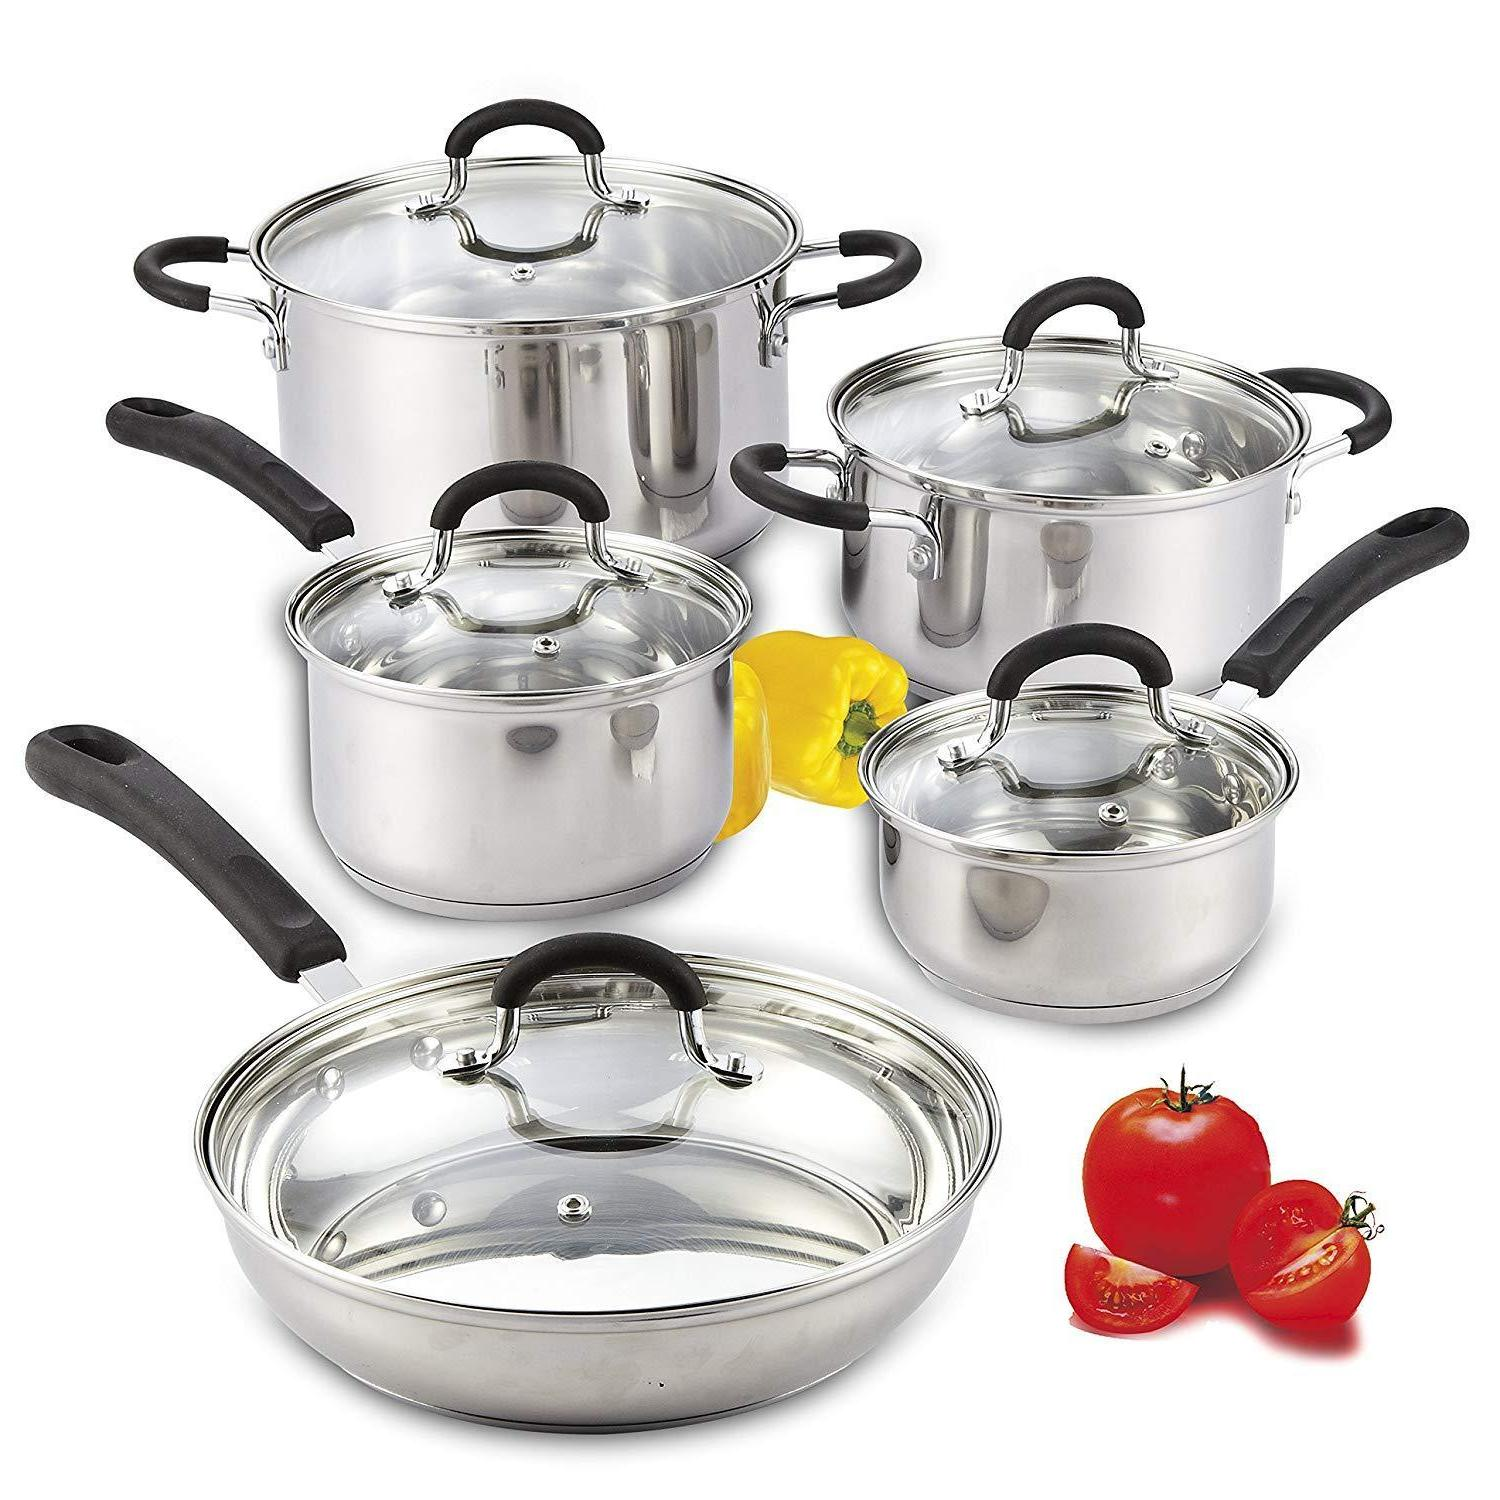 stainless steel induction cookware set best kitchen